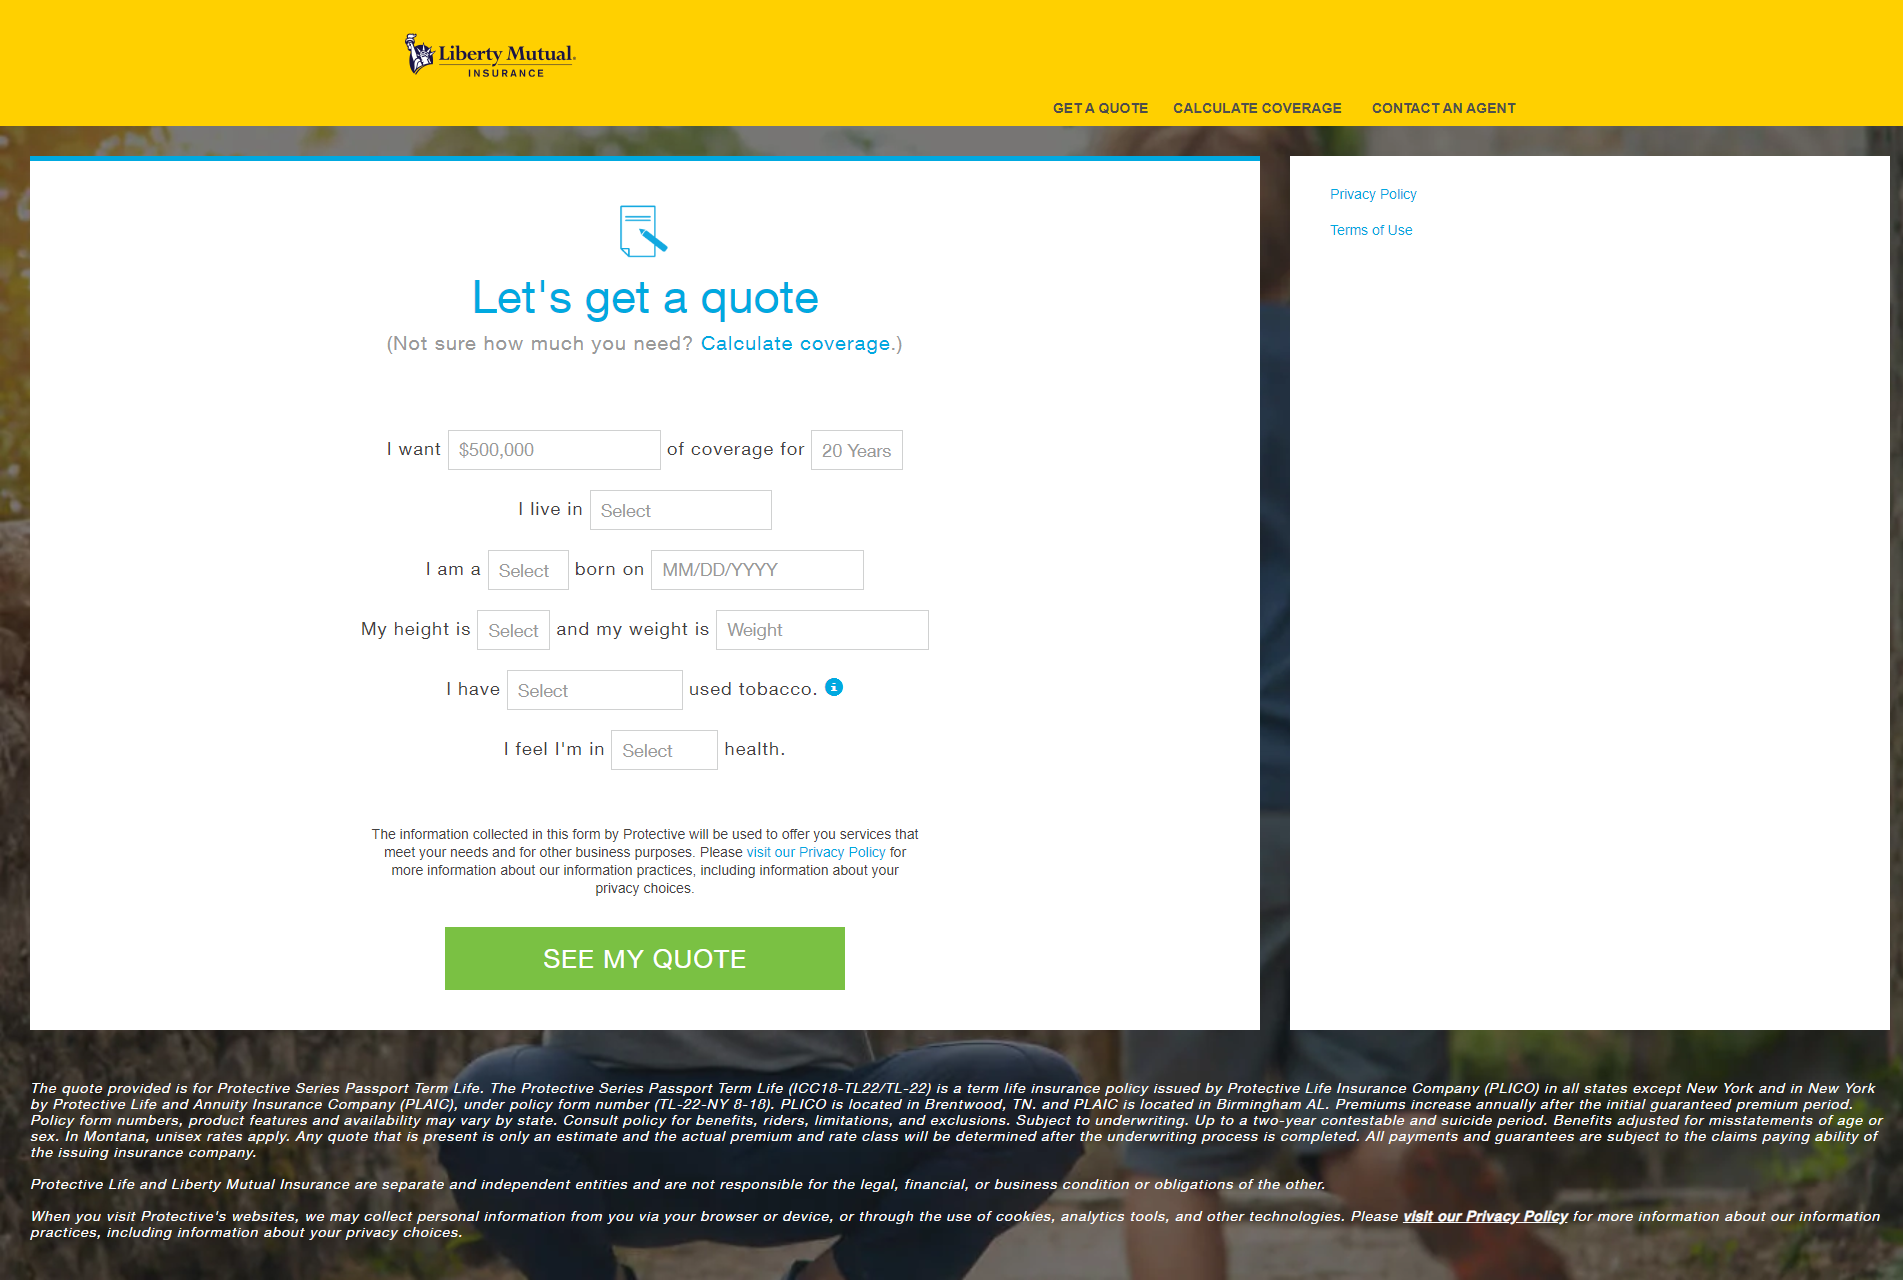 Liberty Mutual website Let's Get a Quote screen